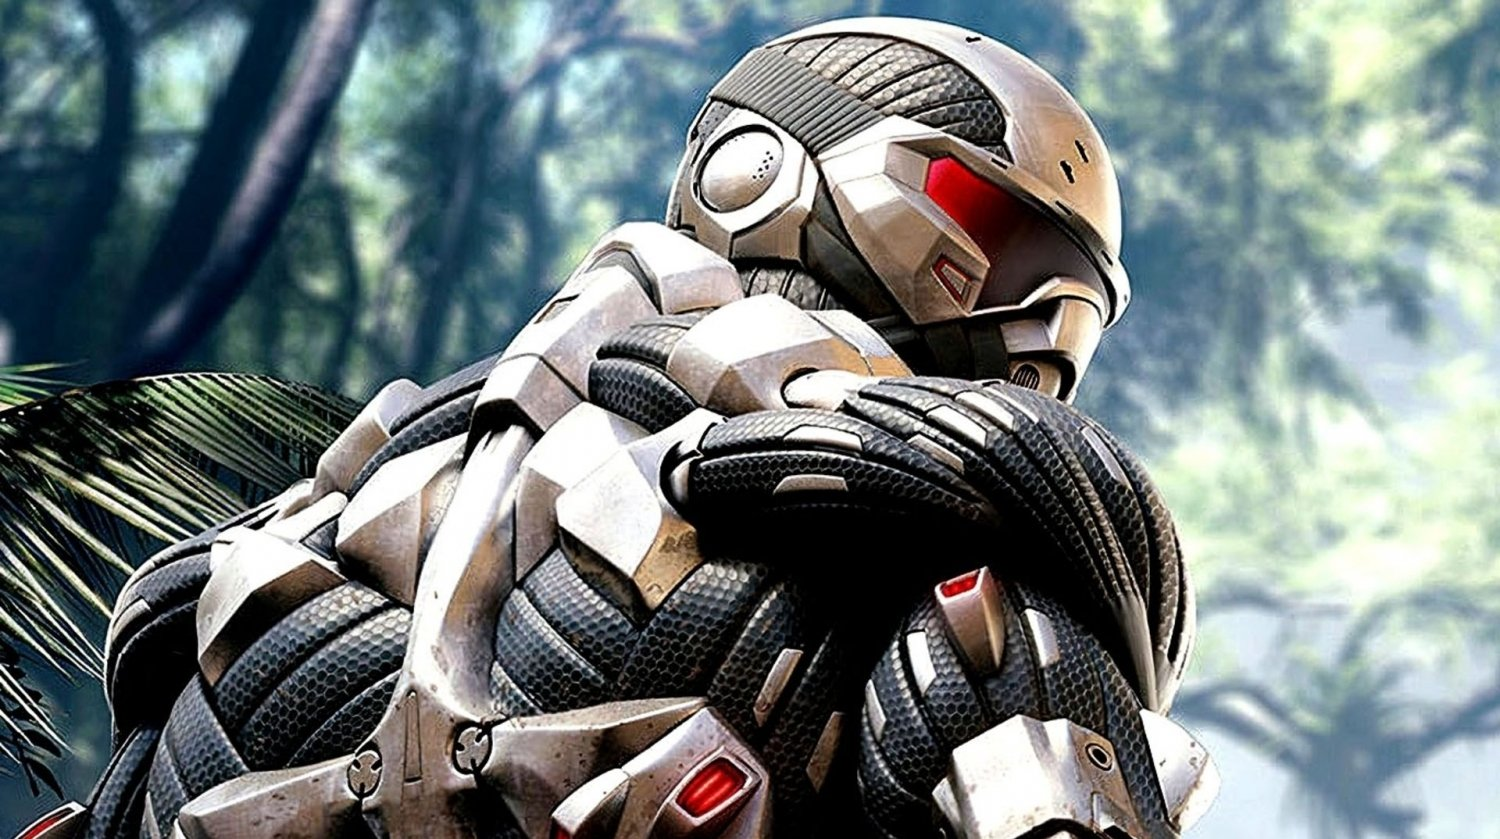 Image of article 'Here's where you can watch the Crysis Remastered gameplay reveal'